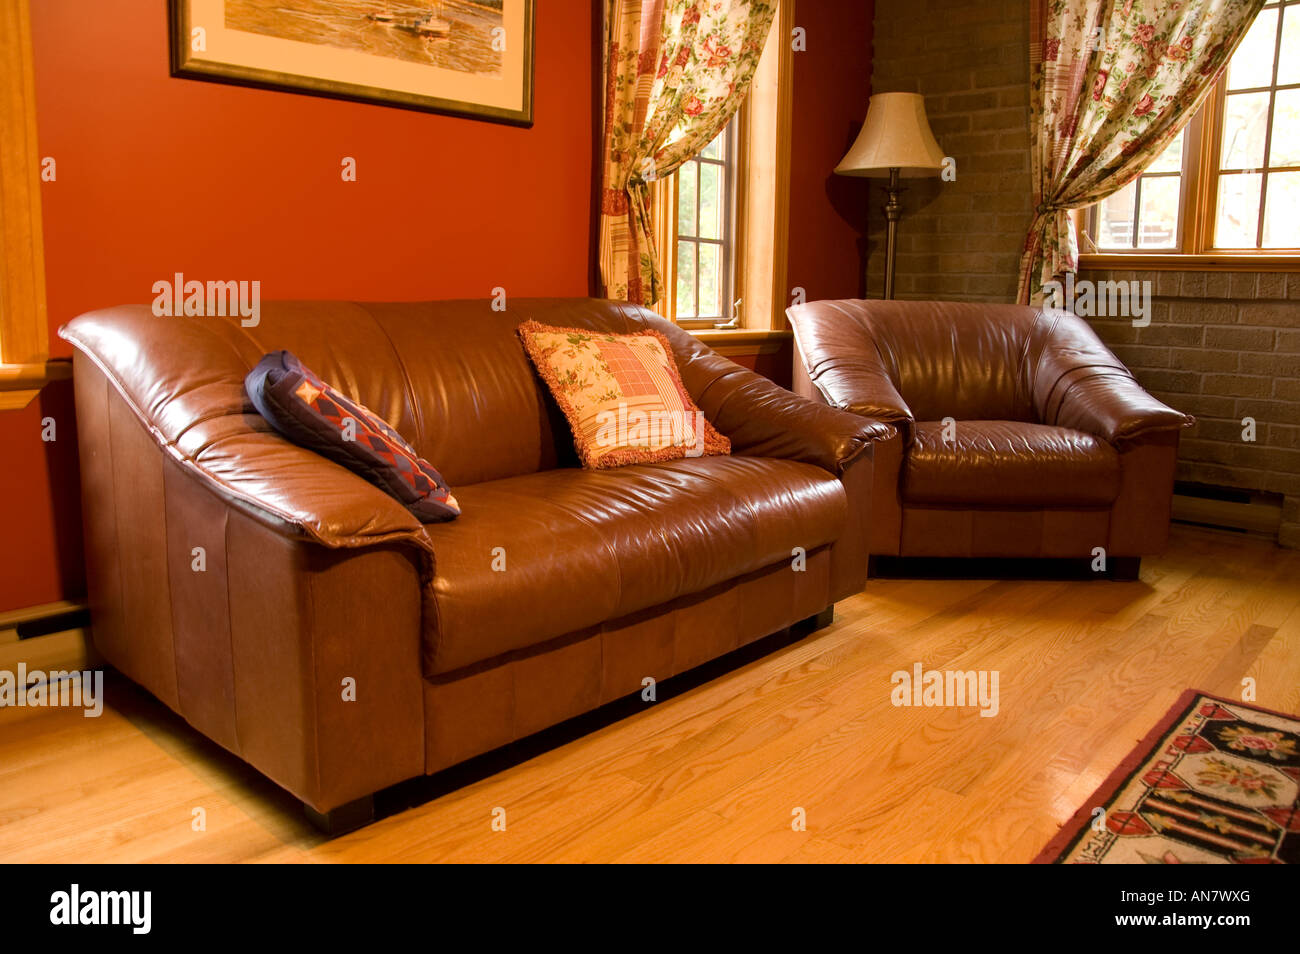 warm living room furnitures and decor in Quebec, Canada - Stock Image